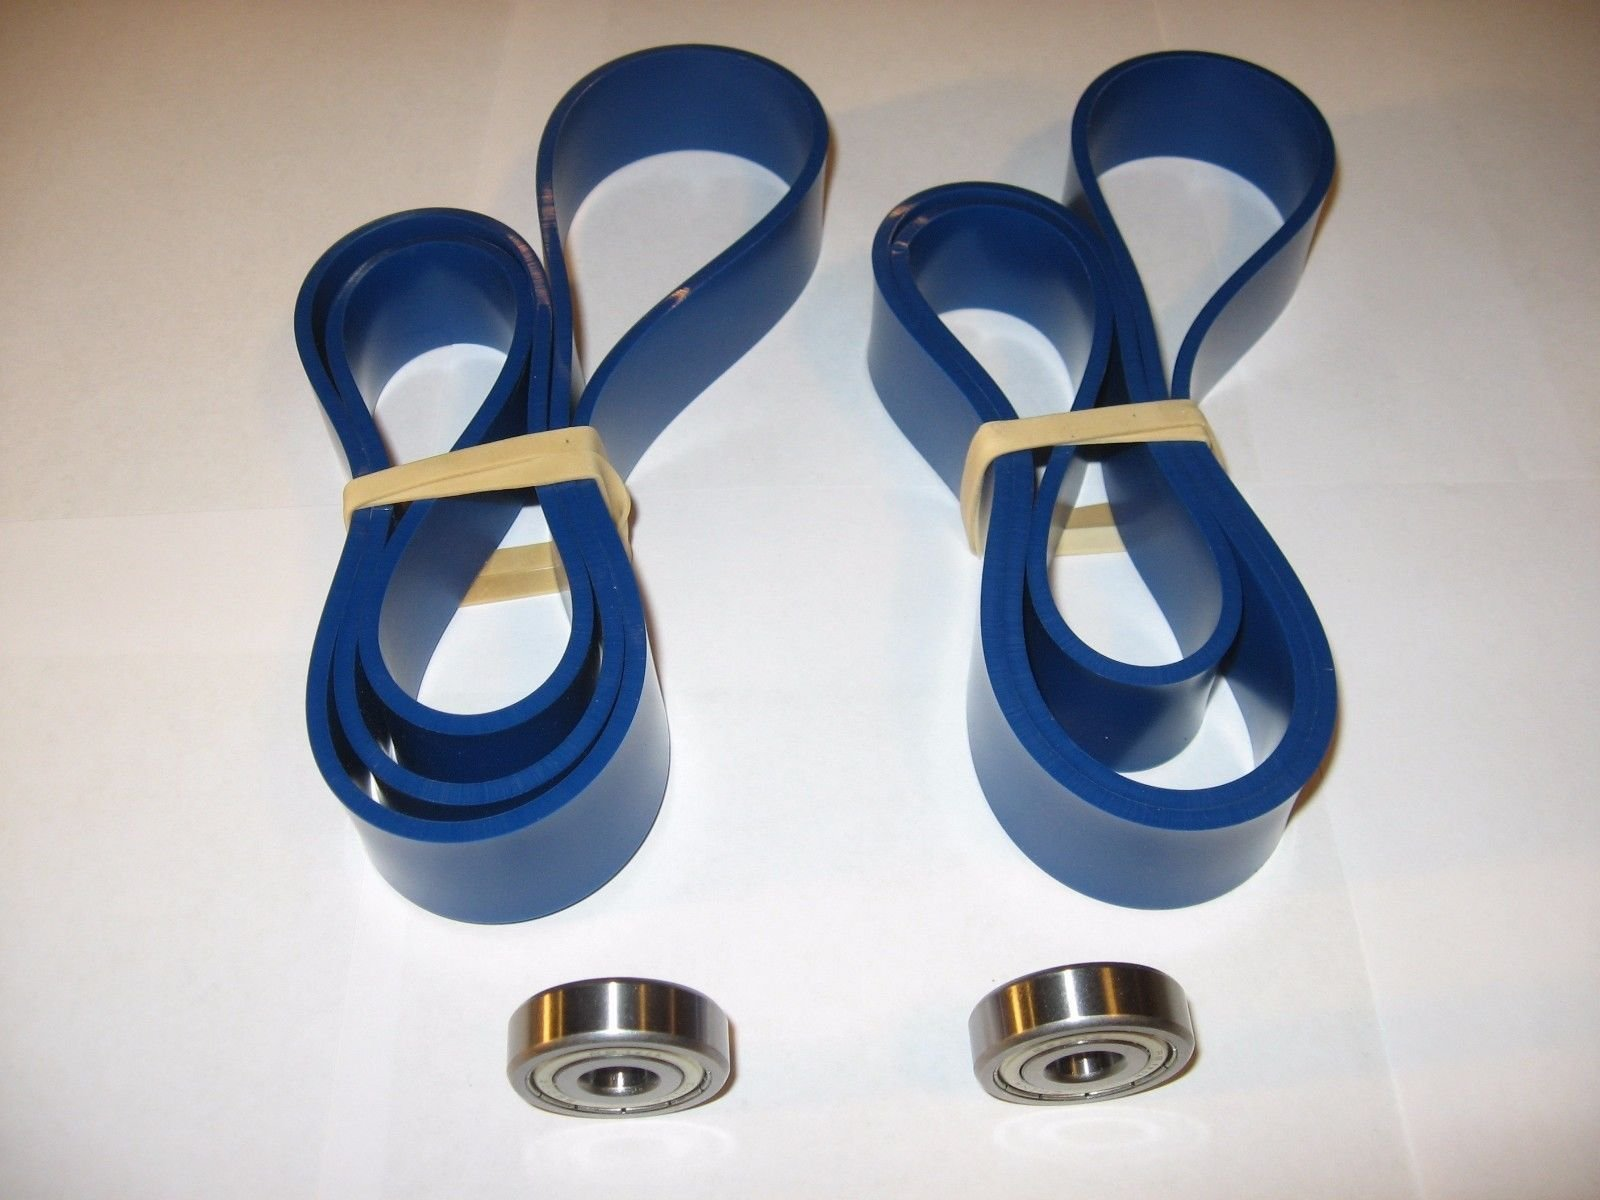 POWERMATIC PWBS-14 BLUE MAX URETHANE BAND SAW TIRES AND 2 THRUST BEARINGS.